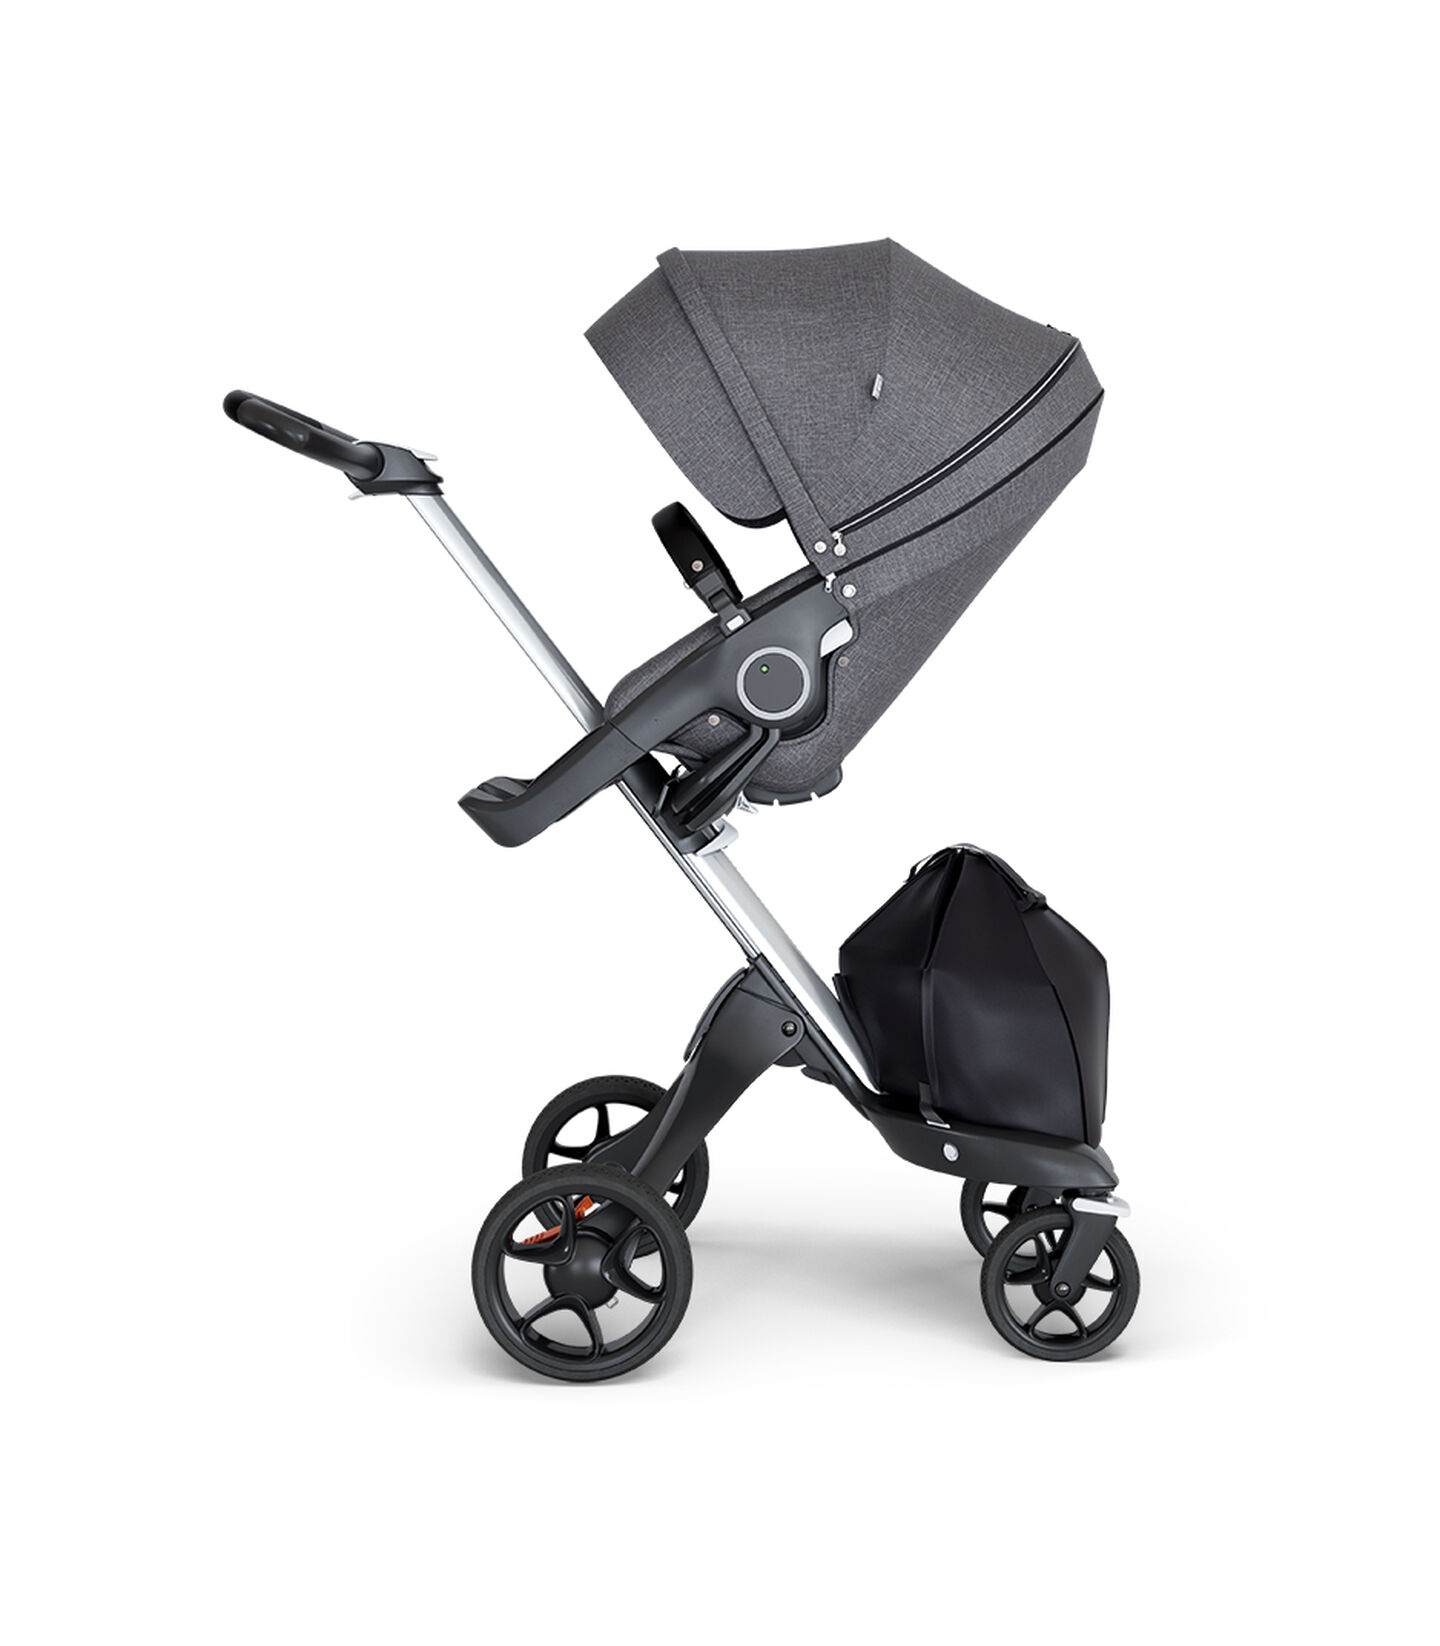 Stokke® Xplory® wtih Silver Chassis and Leatherette Black handle. Stokke® Stroller Seat Black Melange. view 2